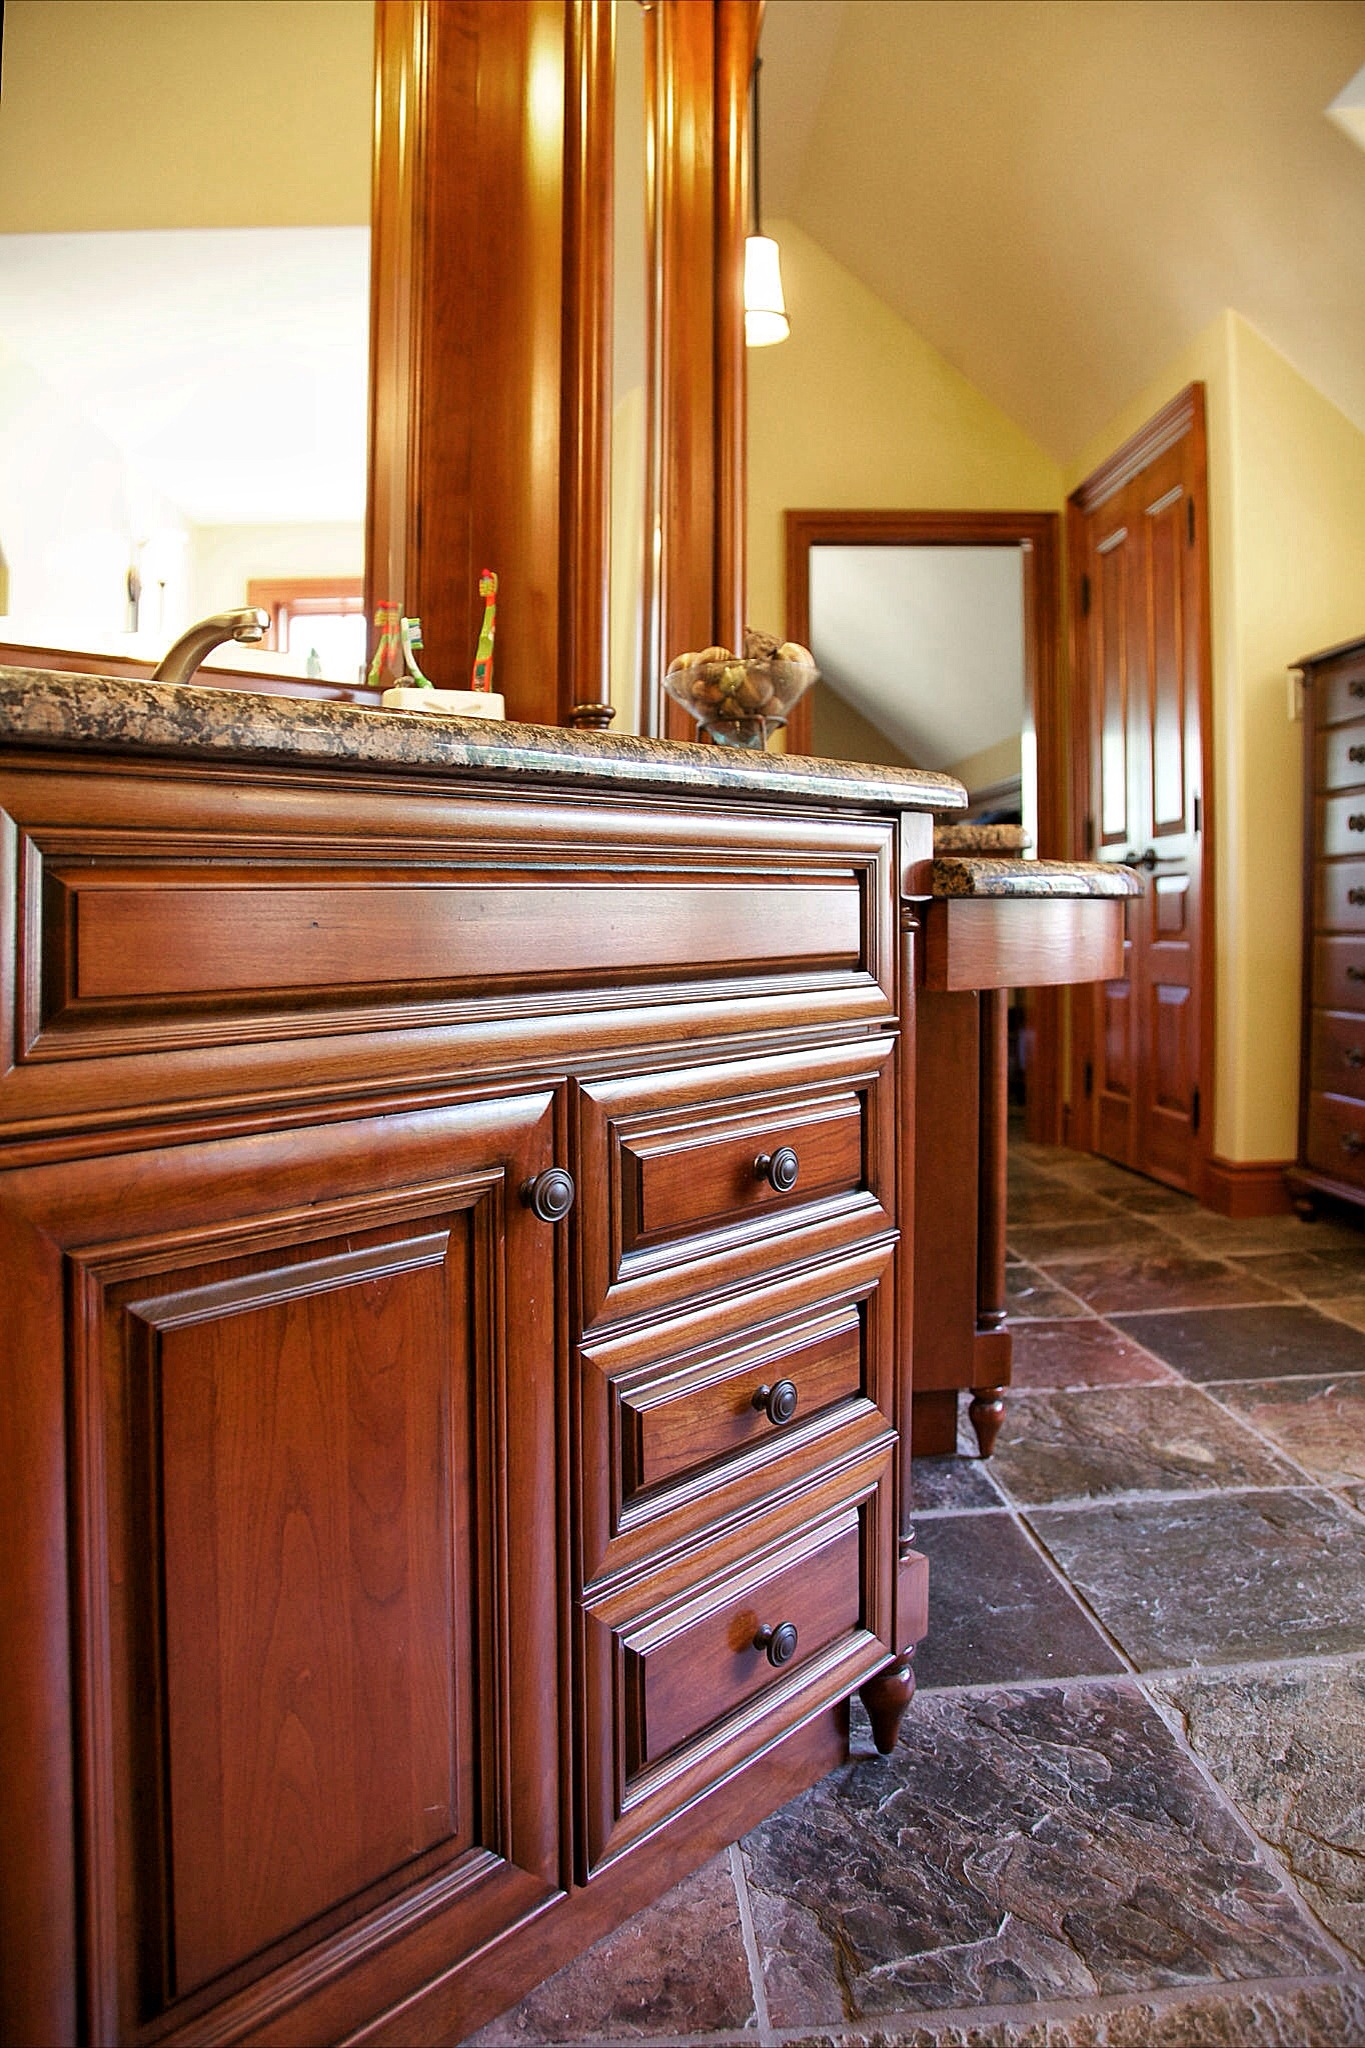 Barr Cabinets Custom Bathroom Cabinetry in Kingston Ontario